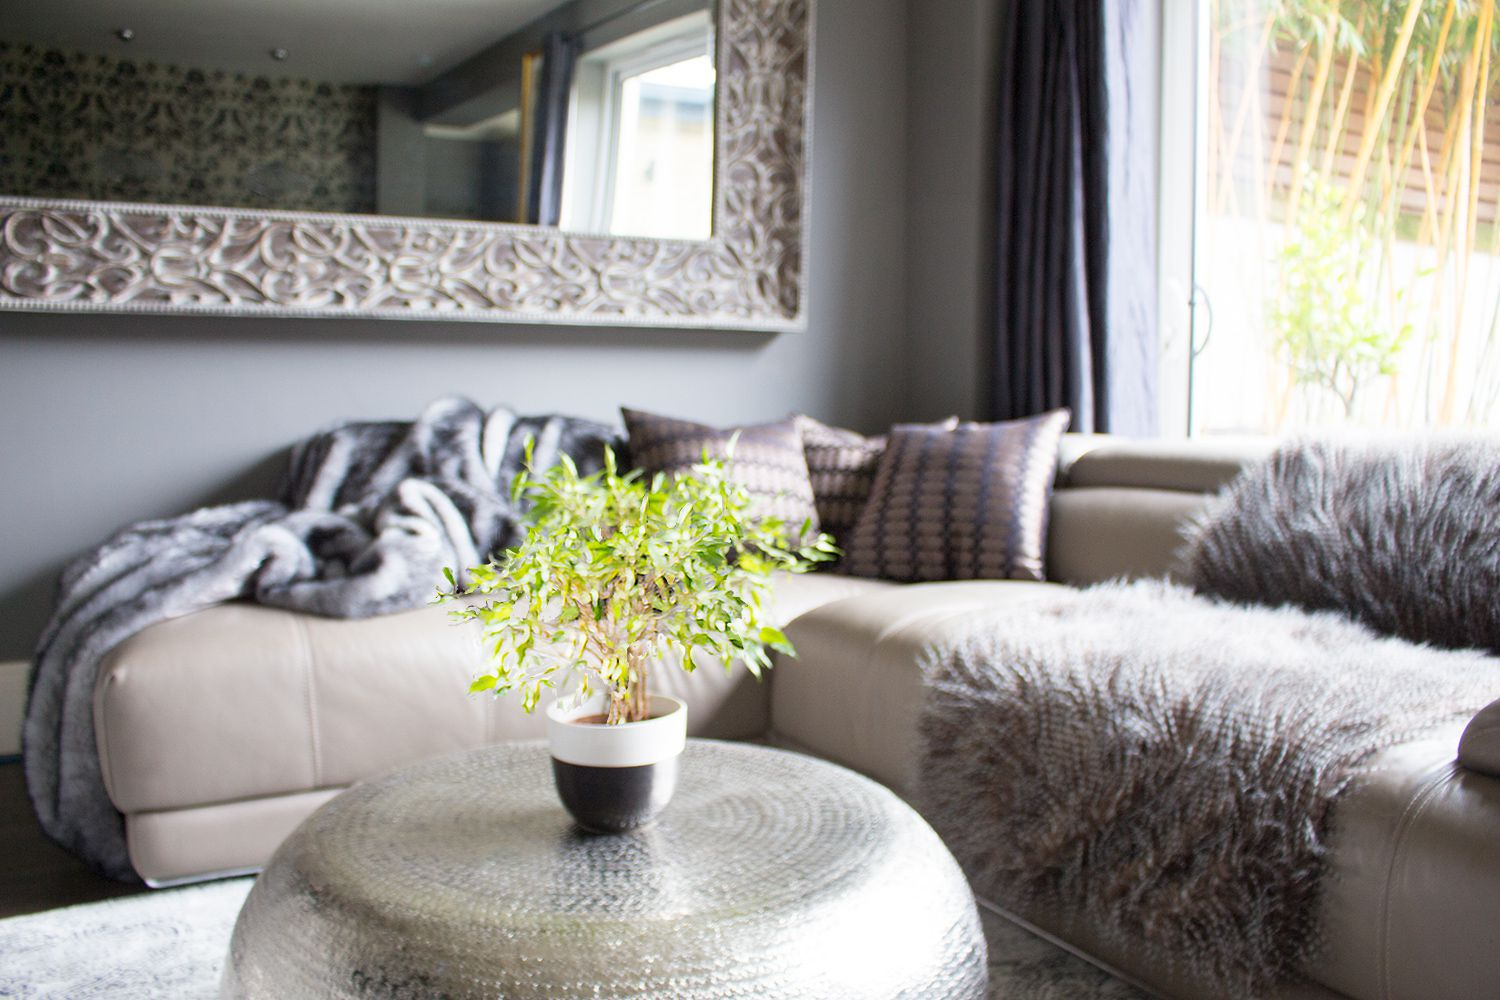 A photo of the hammered metal coffee table in the foreground, with the sofa, cushions and throws in the background.